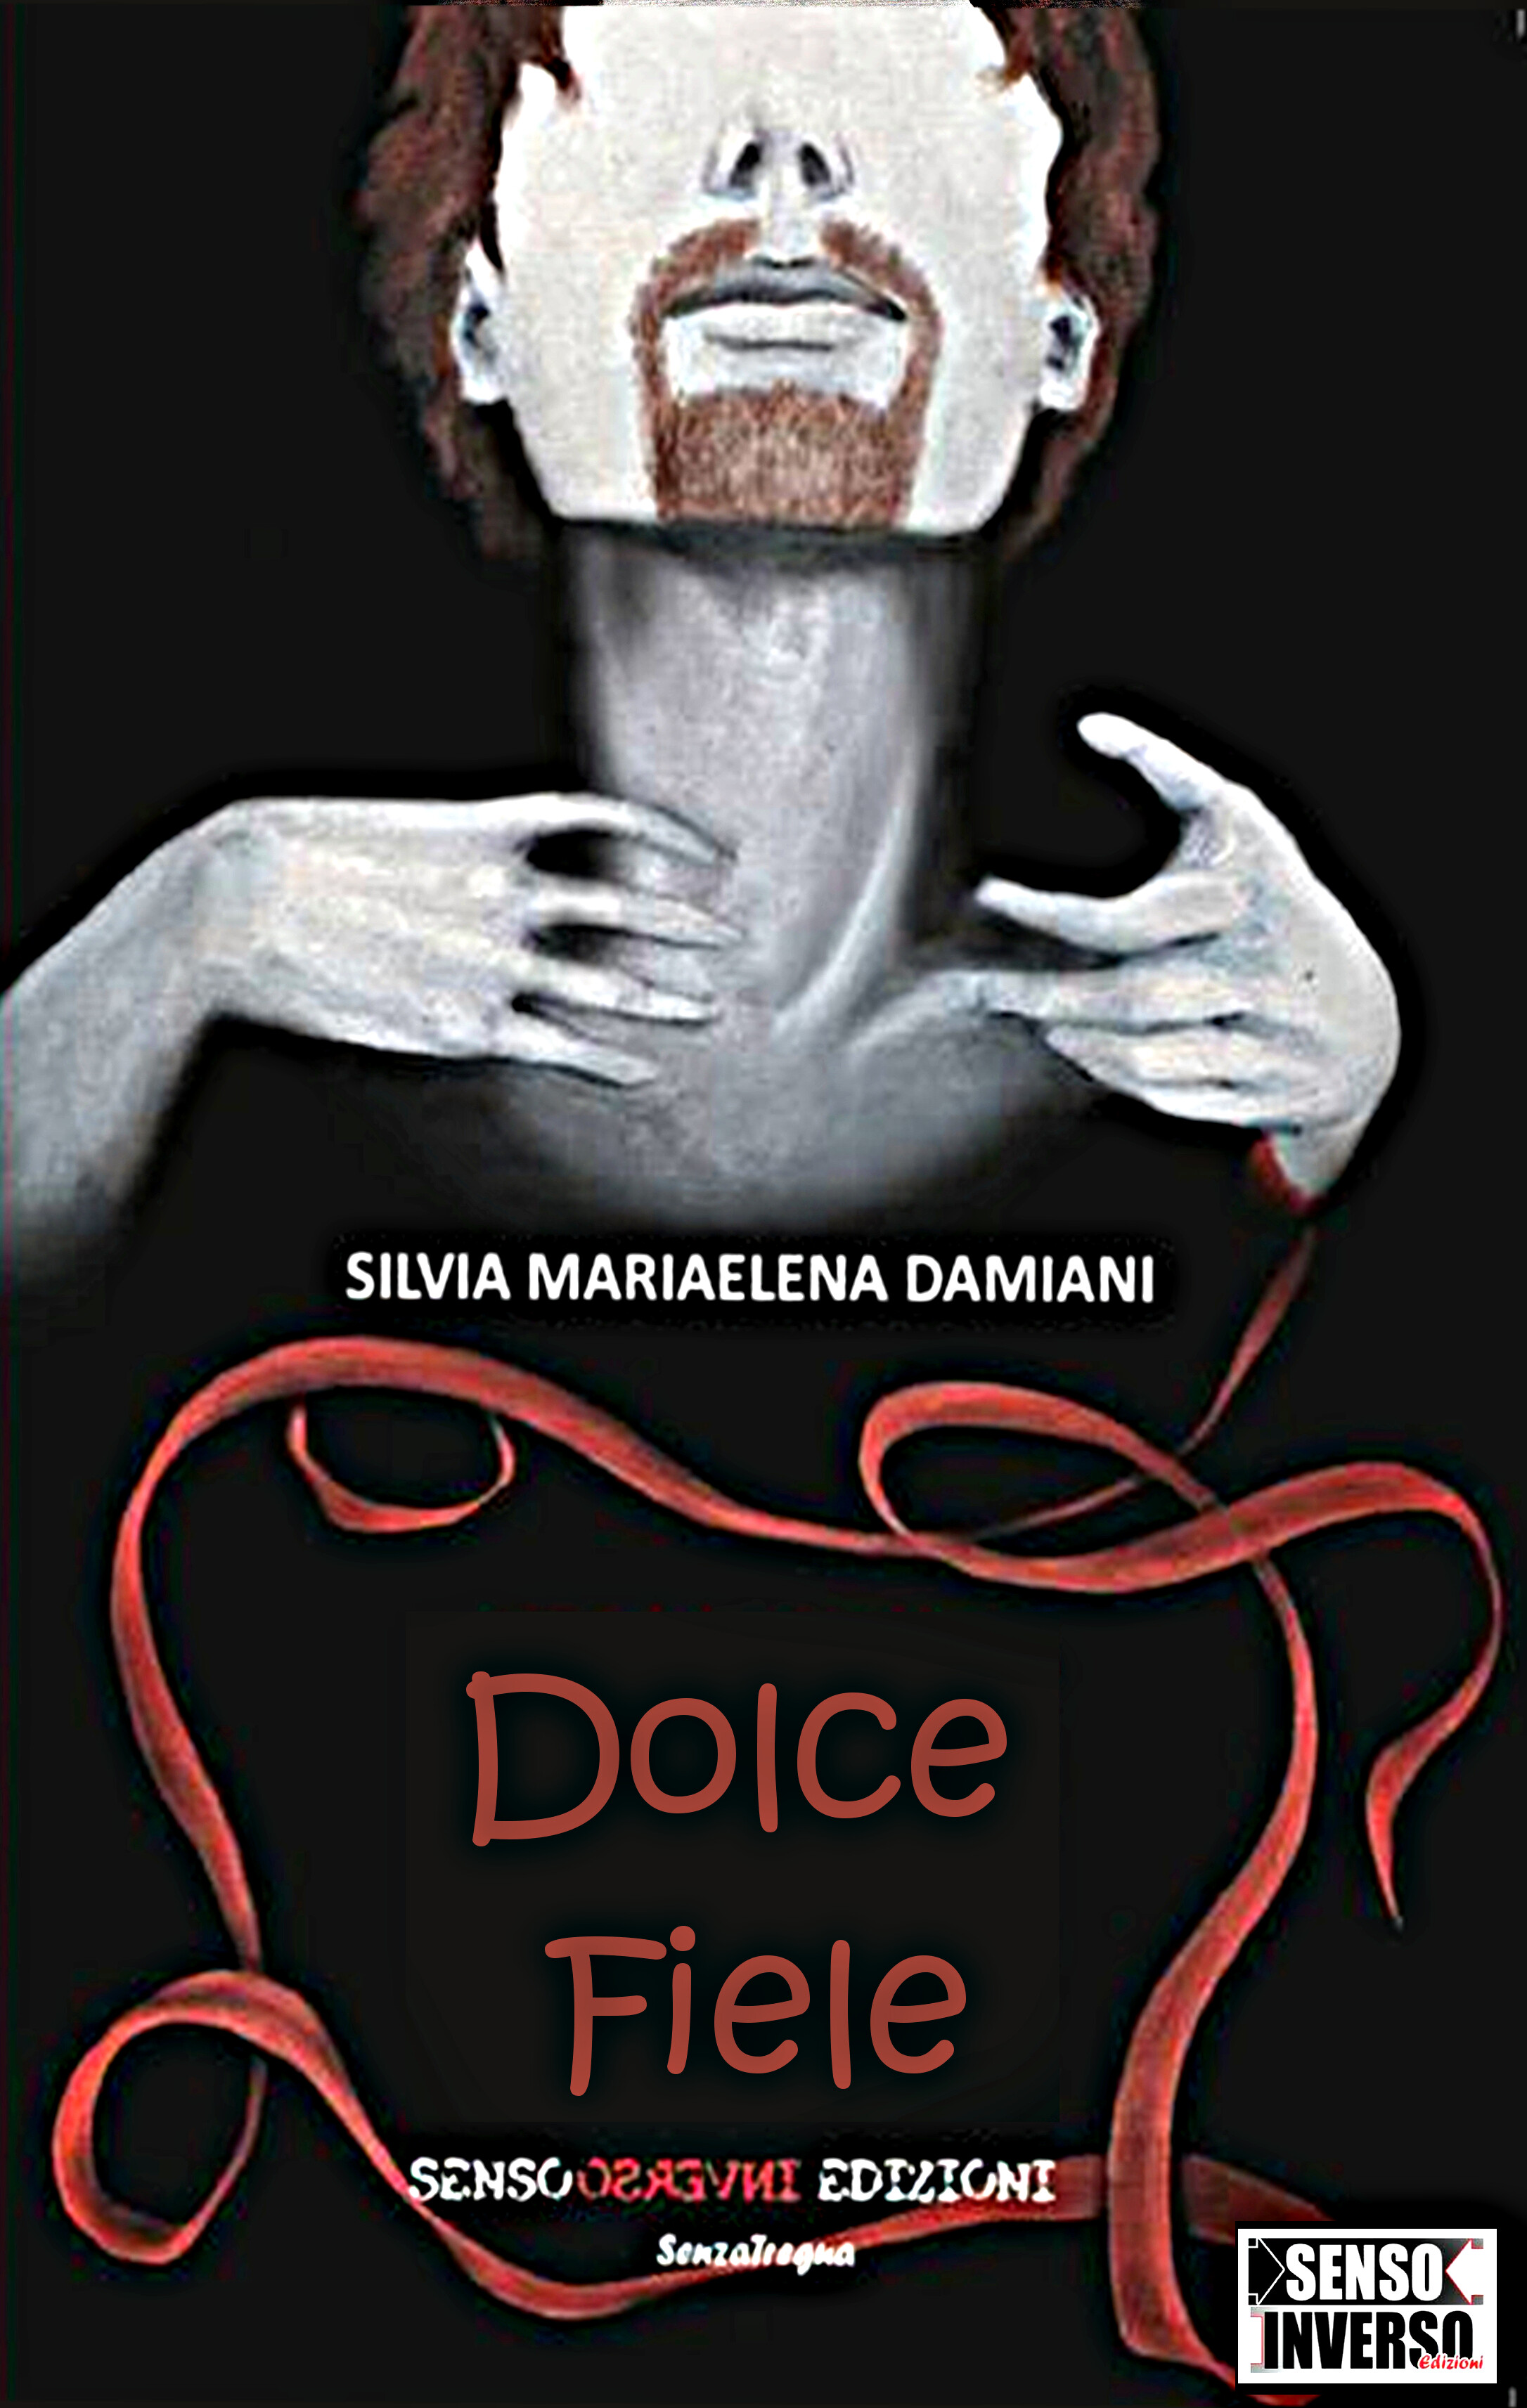 More about Dolce fiele